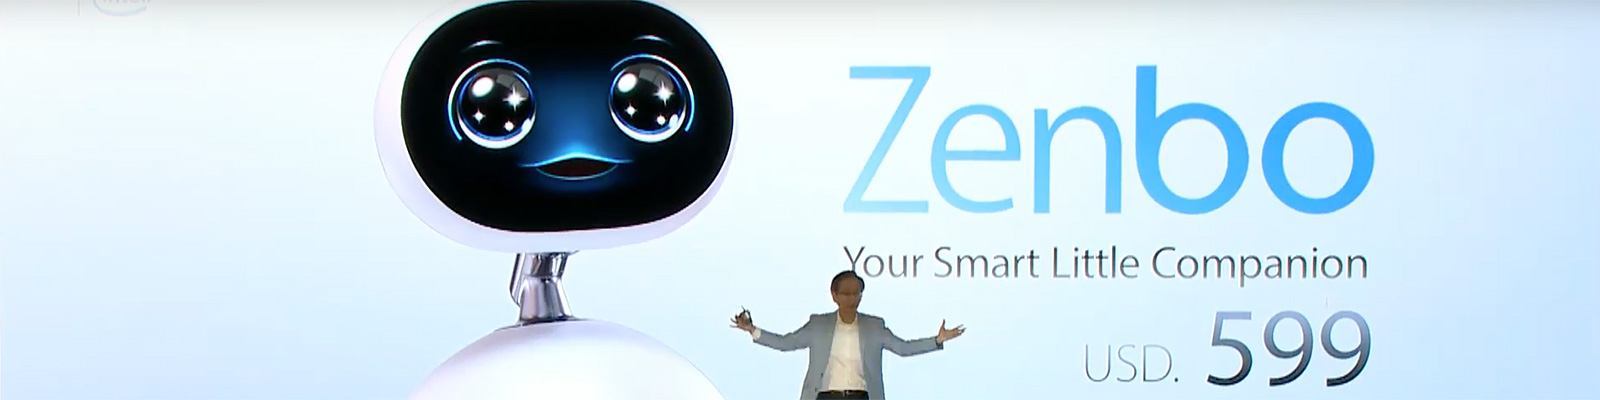 Zenbo Press Event Highlight | ASUS(ASUS)